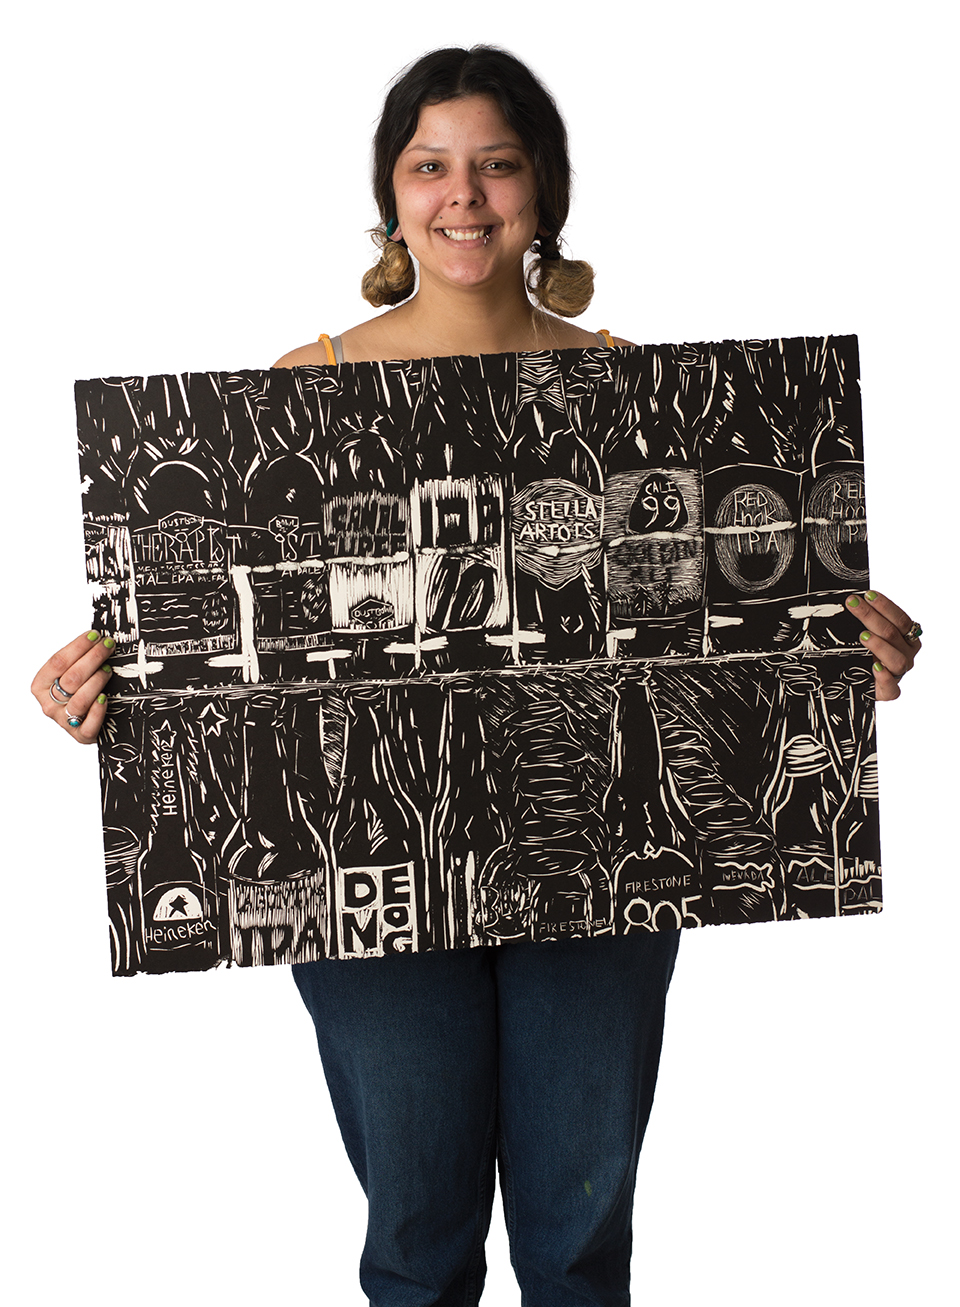 Marisa Sergovia holds up one of her paintings. Photo credit: Sean Martens